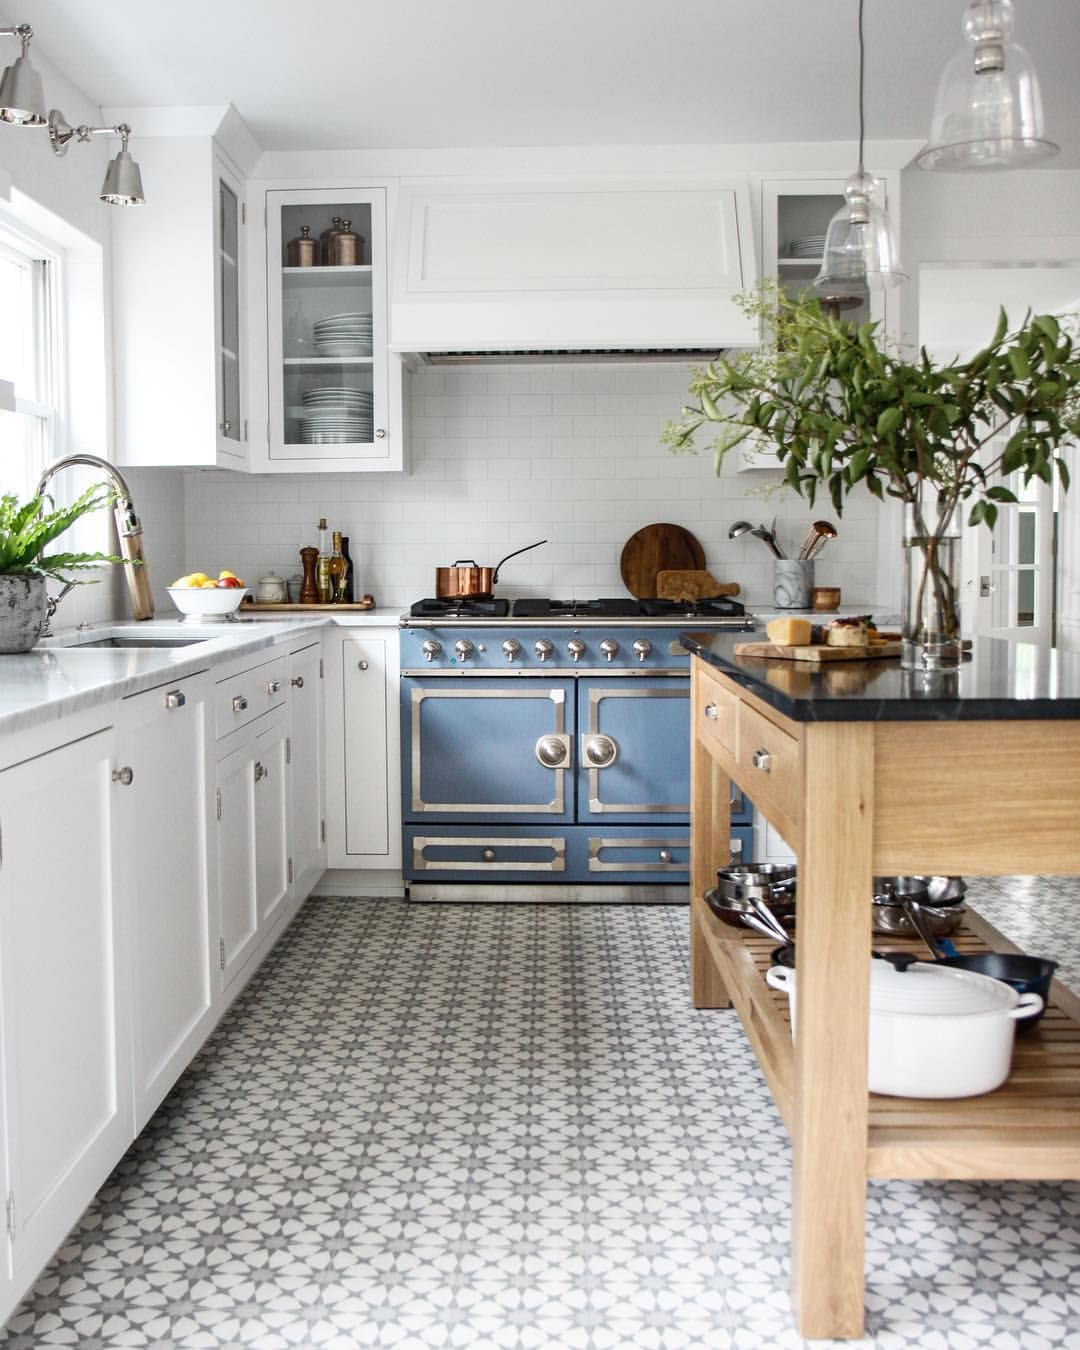 Best White Kitchen French Blue Stove Patterned Tile Floor 640 x 480